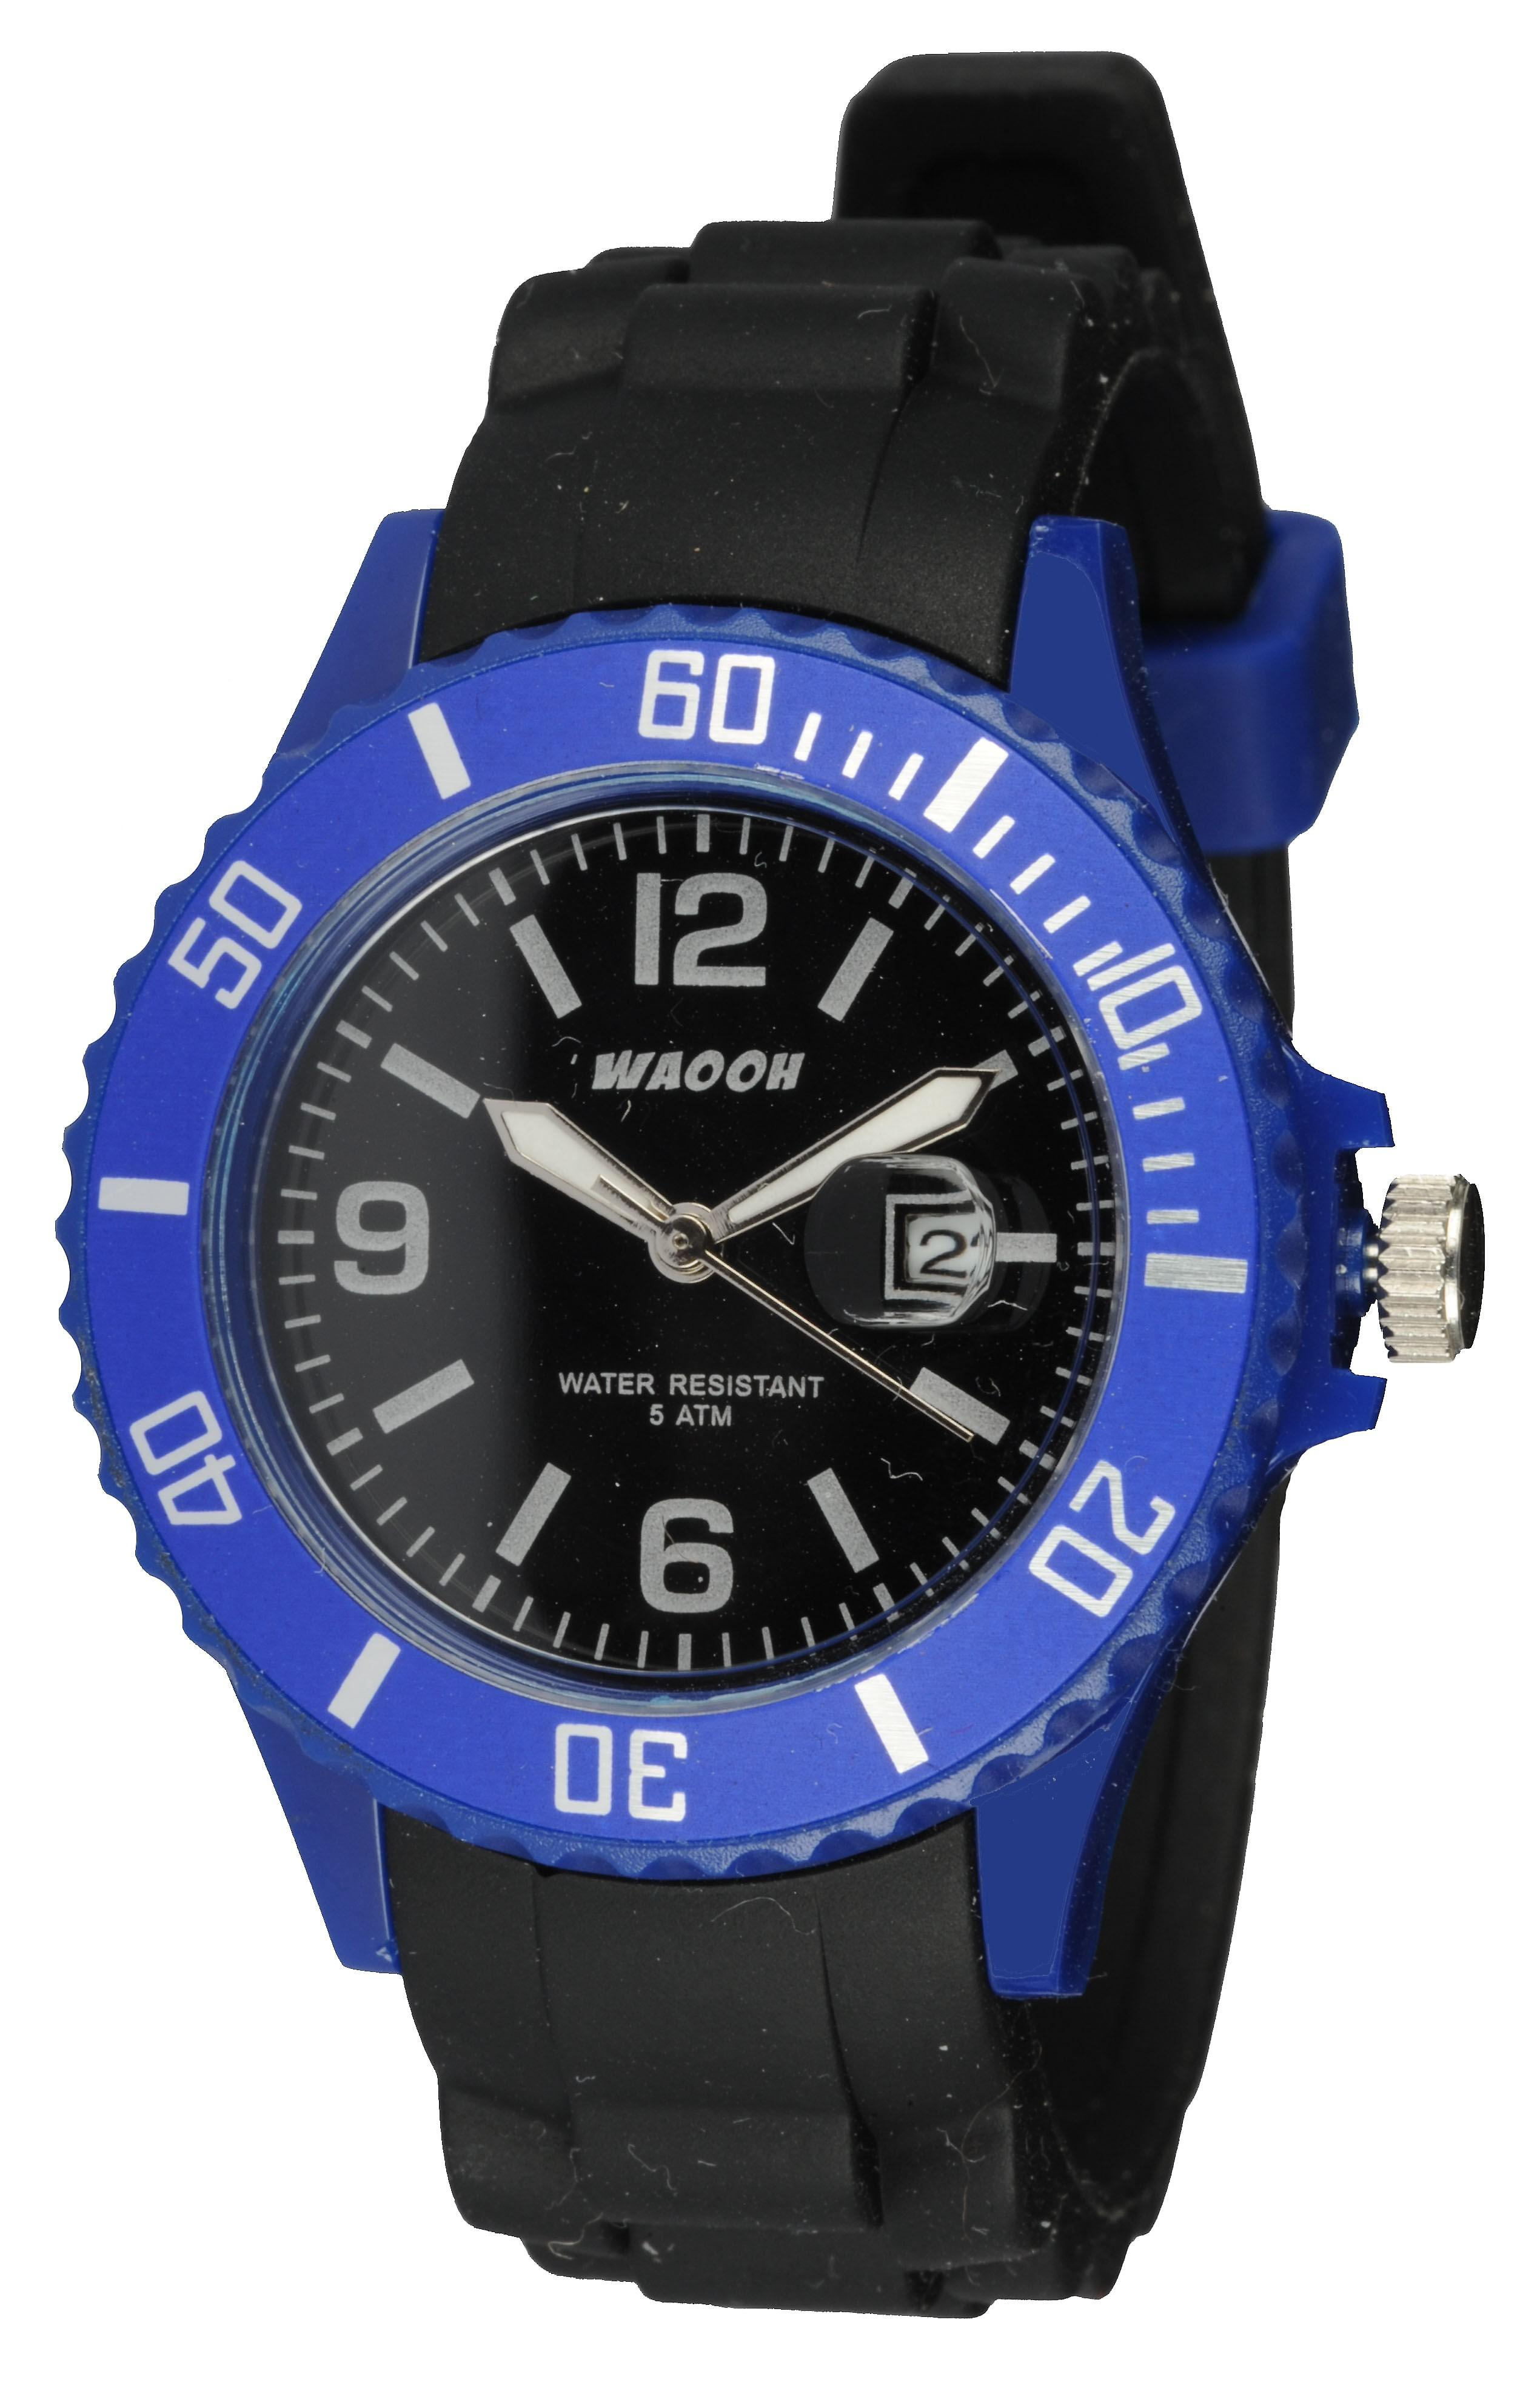 Waooh - Watches - Waooh Monaco38 Bicolore